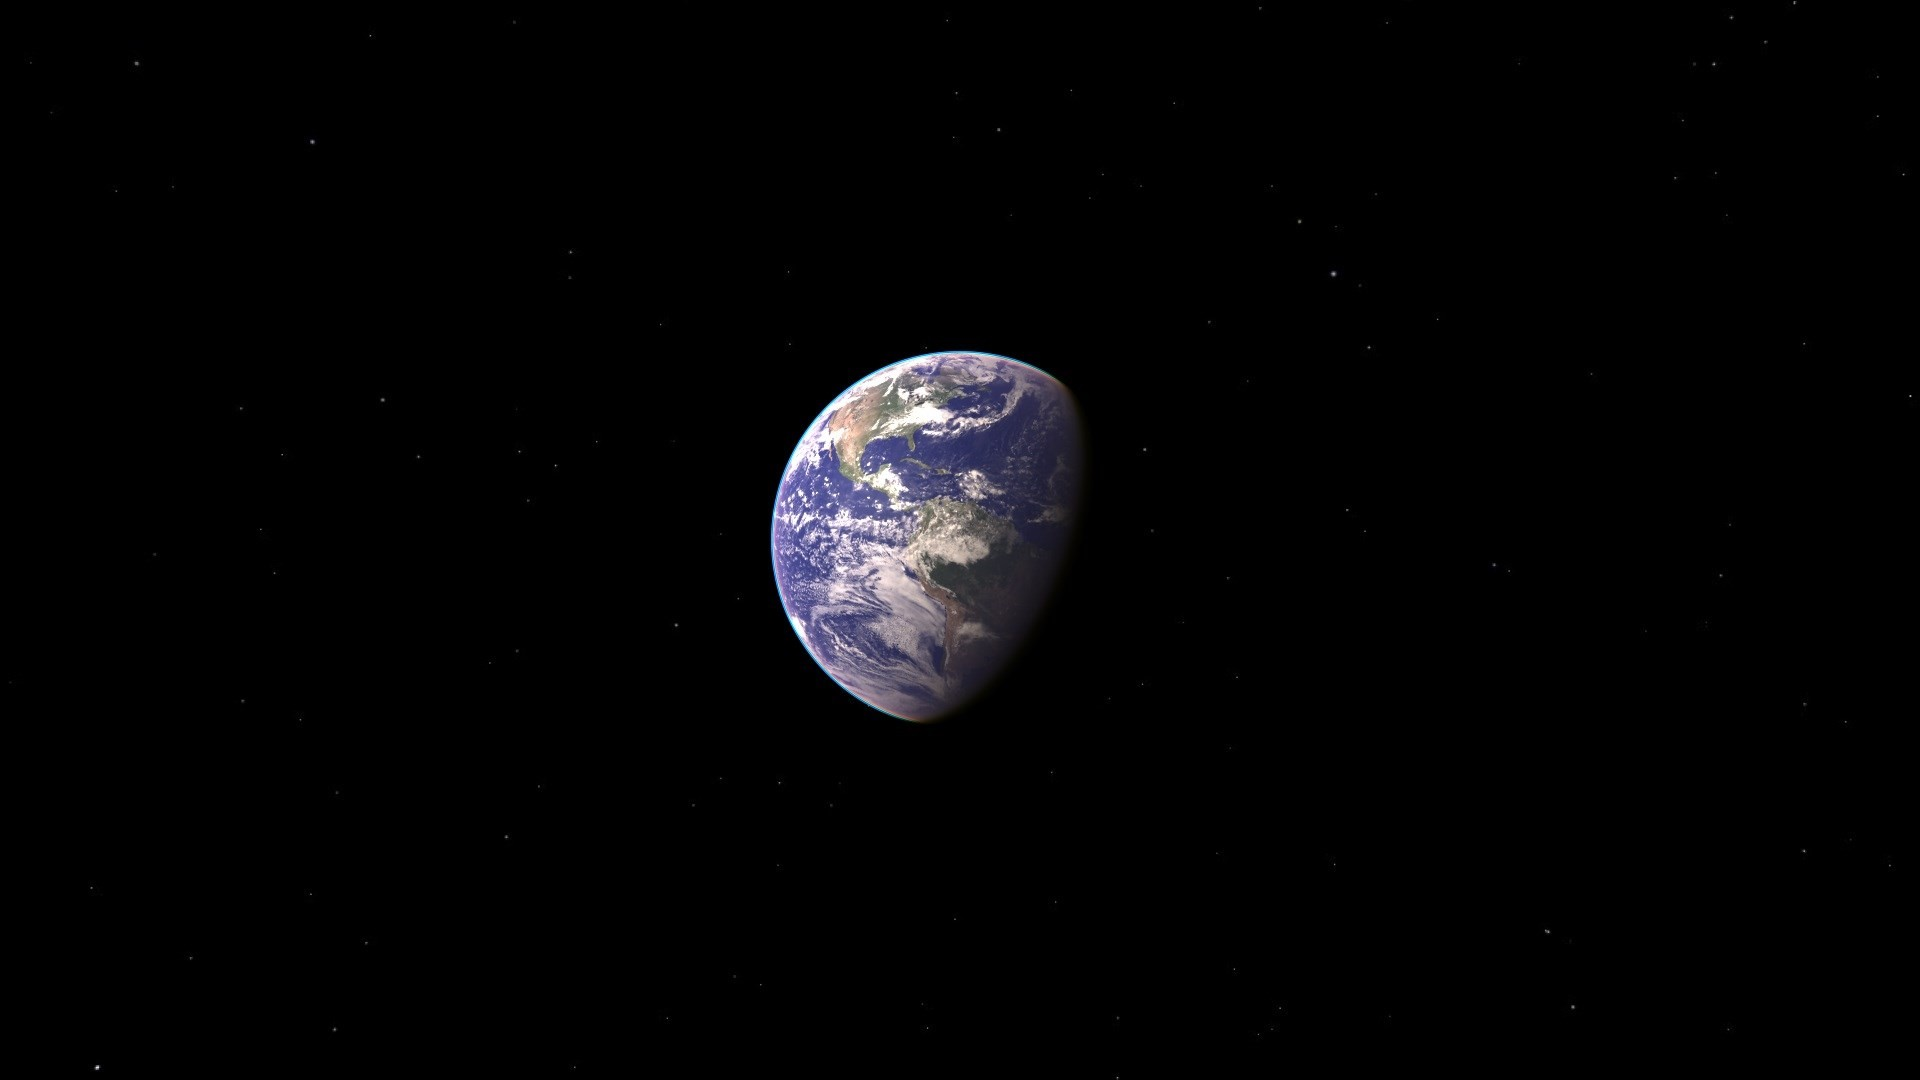 spacecraft farthest from earth - photo #29